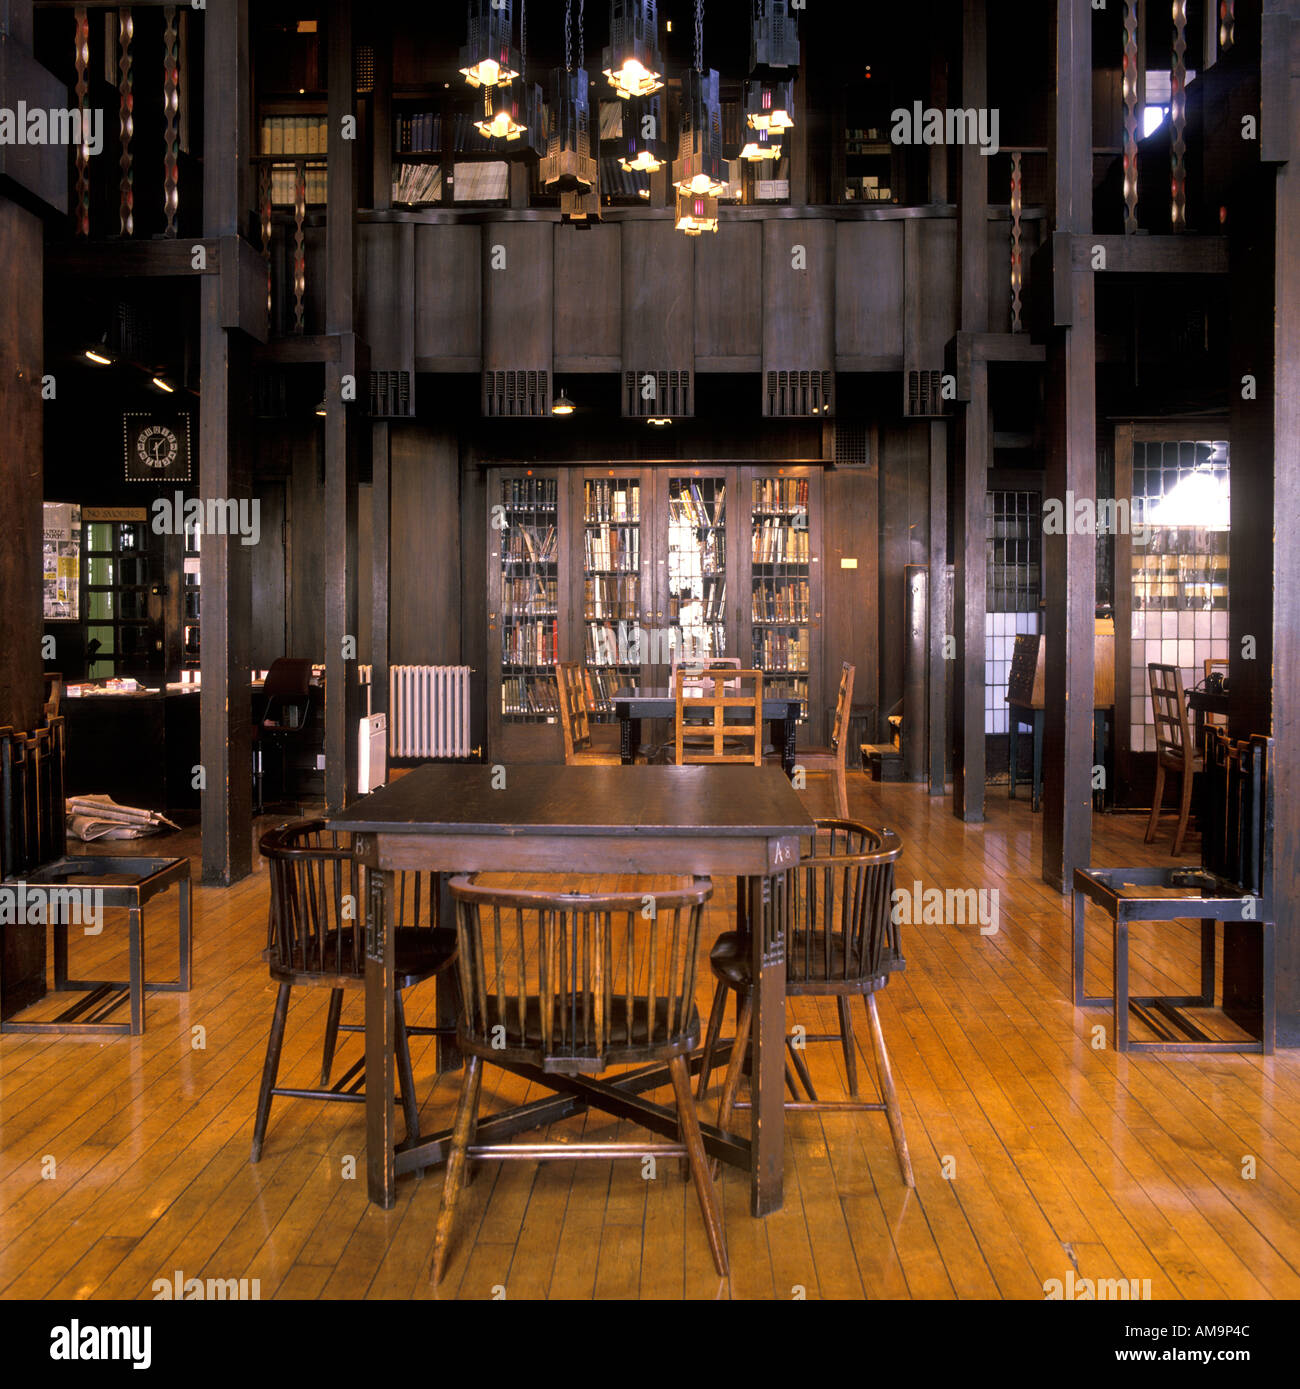 Library Glasgow School Of Art Architect Charles Rennie Mackintosh Stock Photo Alamy